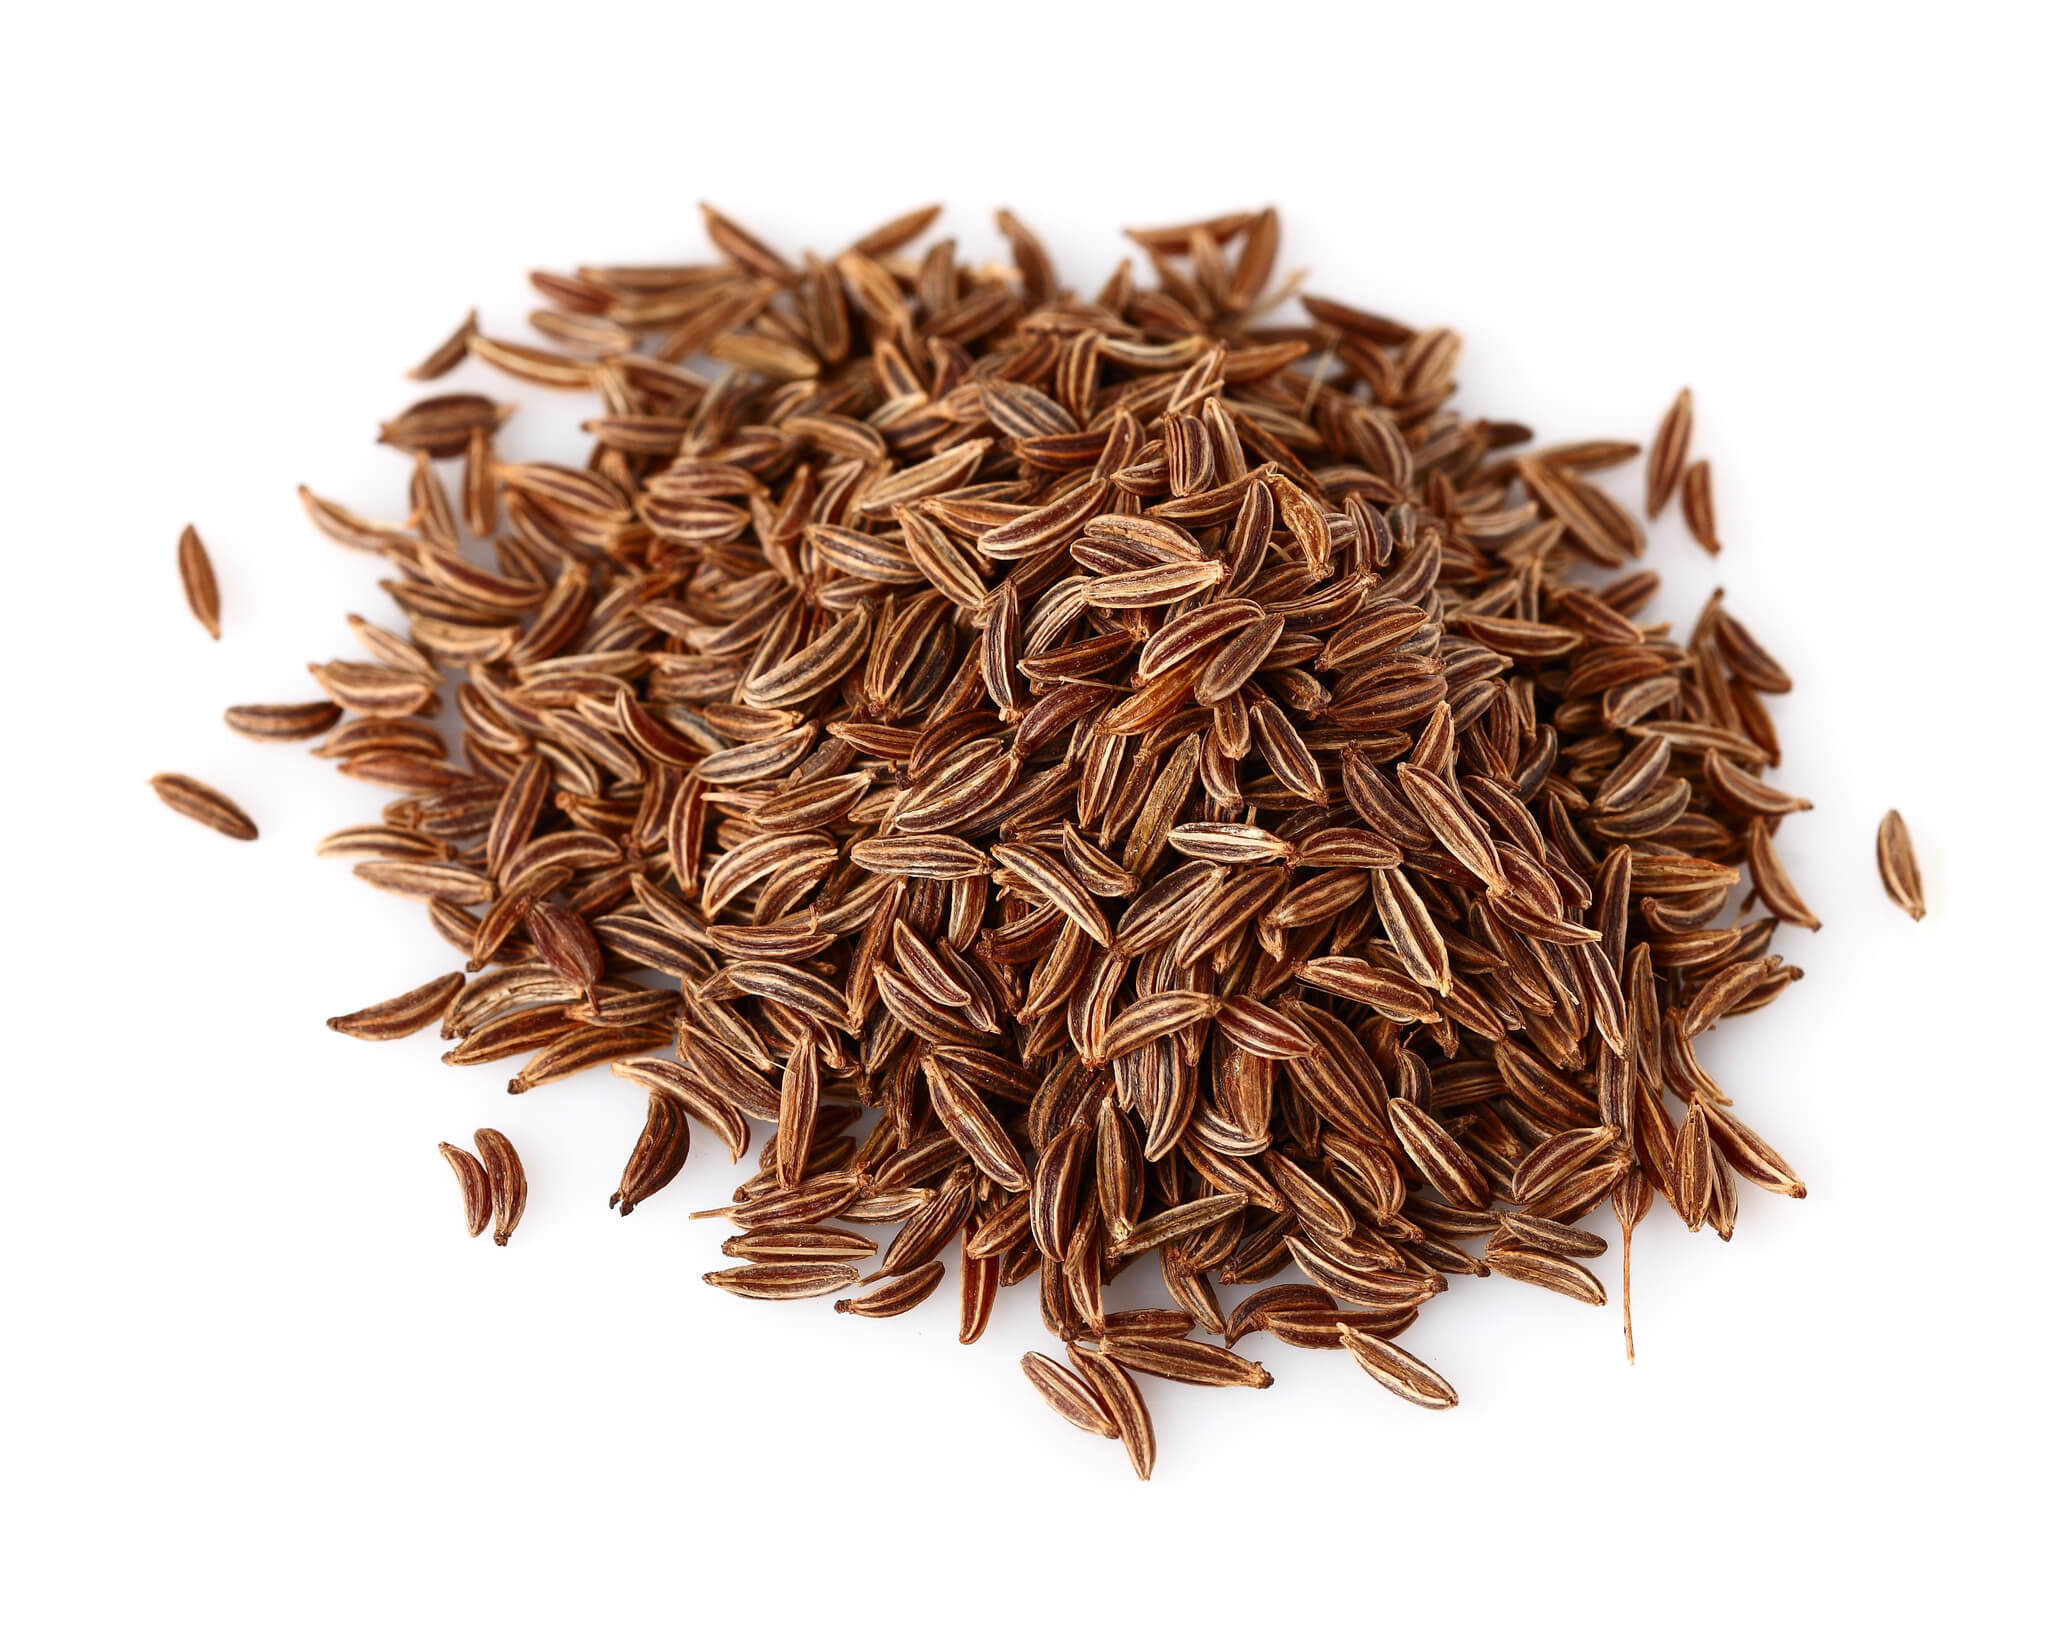 Description: Caraway, recognized as Persian cumin, is a biennial herb belongs to Apiaceae family. Its native place includes Europe, Asia, and Northern America. It is scientifically termed as Carum carvi, additionally labeled as Apium Carvi, its scientific name. Caraway seeds are popularly used as spice, especially in Europe and Indian subcontinent.  Synonyms: Caraway oil, Carum carvi, Meridian Fennel, Persian Fennel. Botanical Name: Carum Carvi Part Used: Ripe Seeds Color: Colorless to Yellow Viscosity: Watery in viscosity Perfumery Note: Characteristic Shelf Life: Two Years Density: 0.904-0.920 Refractive Density: 1.484-1.490   Extraction: The essential oil of Caraway is extracted from the dried Caraway seeds through the steam distillation process. It yields 2-8%.    Origin: Caraway oil originates from the Asia Minor, and widely distributed in Russia, Africa, and Northern Europe. It's an old spice that is widely used as flavoring agent for cooking purpose. Caraway plant has soft leaves with pink flower and can grow up to 60-62 cm.    Abstract: Essential chemical constituents of Caraway oil are Carvone, Limonene, Acetaldehyde, Cumuninic aldehyde & furfurol.   Concoction: It can be easily blend with other essential oils such as orange oil, ginger oil, Lavender oil, Frankincense, Coriander Chamomile oil & Basil oil.   USES: Pharma Uses Caraway oil is an expectorant & cure asthma, cough & bronchitis. It is very helpful in sore throat, laryngitis, & urinary problems. Cosmatics Uses Caraway oil is used in massage oil and help skin to fight against infections.  It is used as anti-aging agent and has the power of tissue regeneration.  Food and Flavoring Uses Caraway oil is used as a food's flavoring agent and mouth freshener.  It is used in deserts & Indian Dishes like rice Dishes.